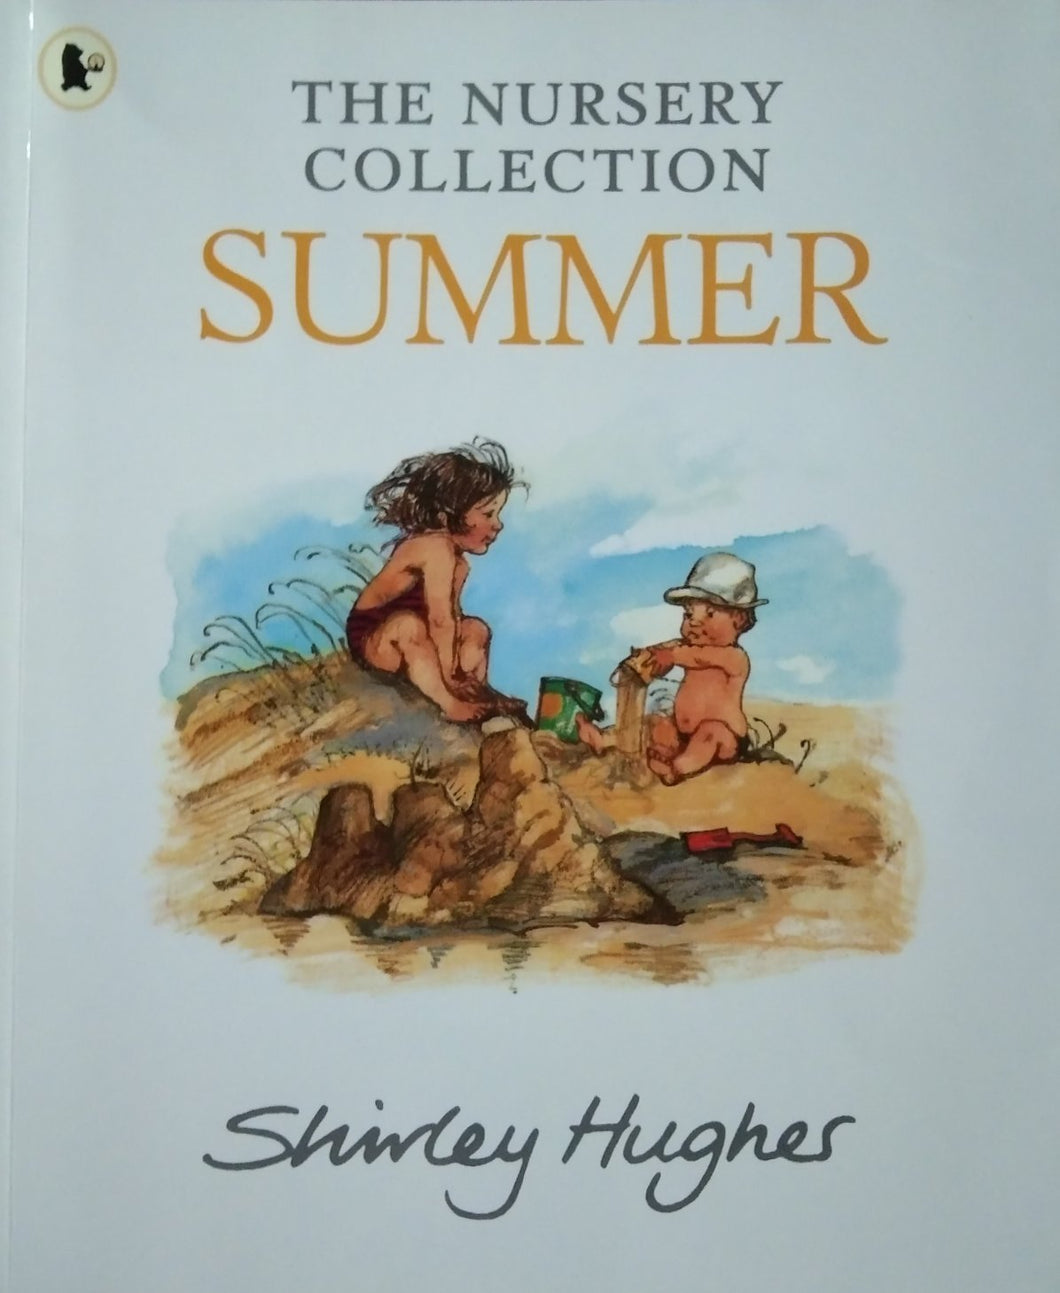 The nursery collection summer by shirley hughes